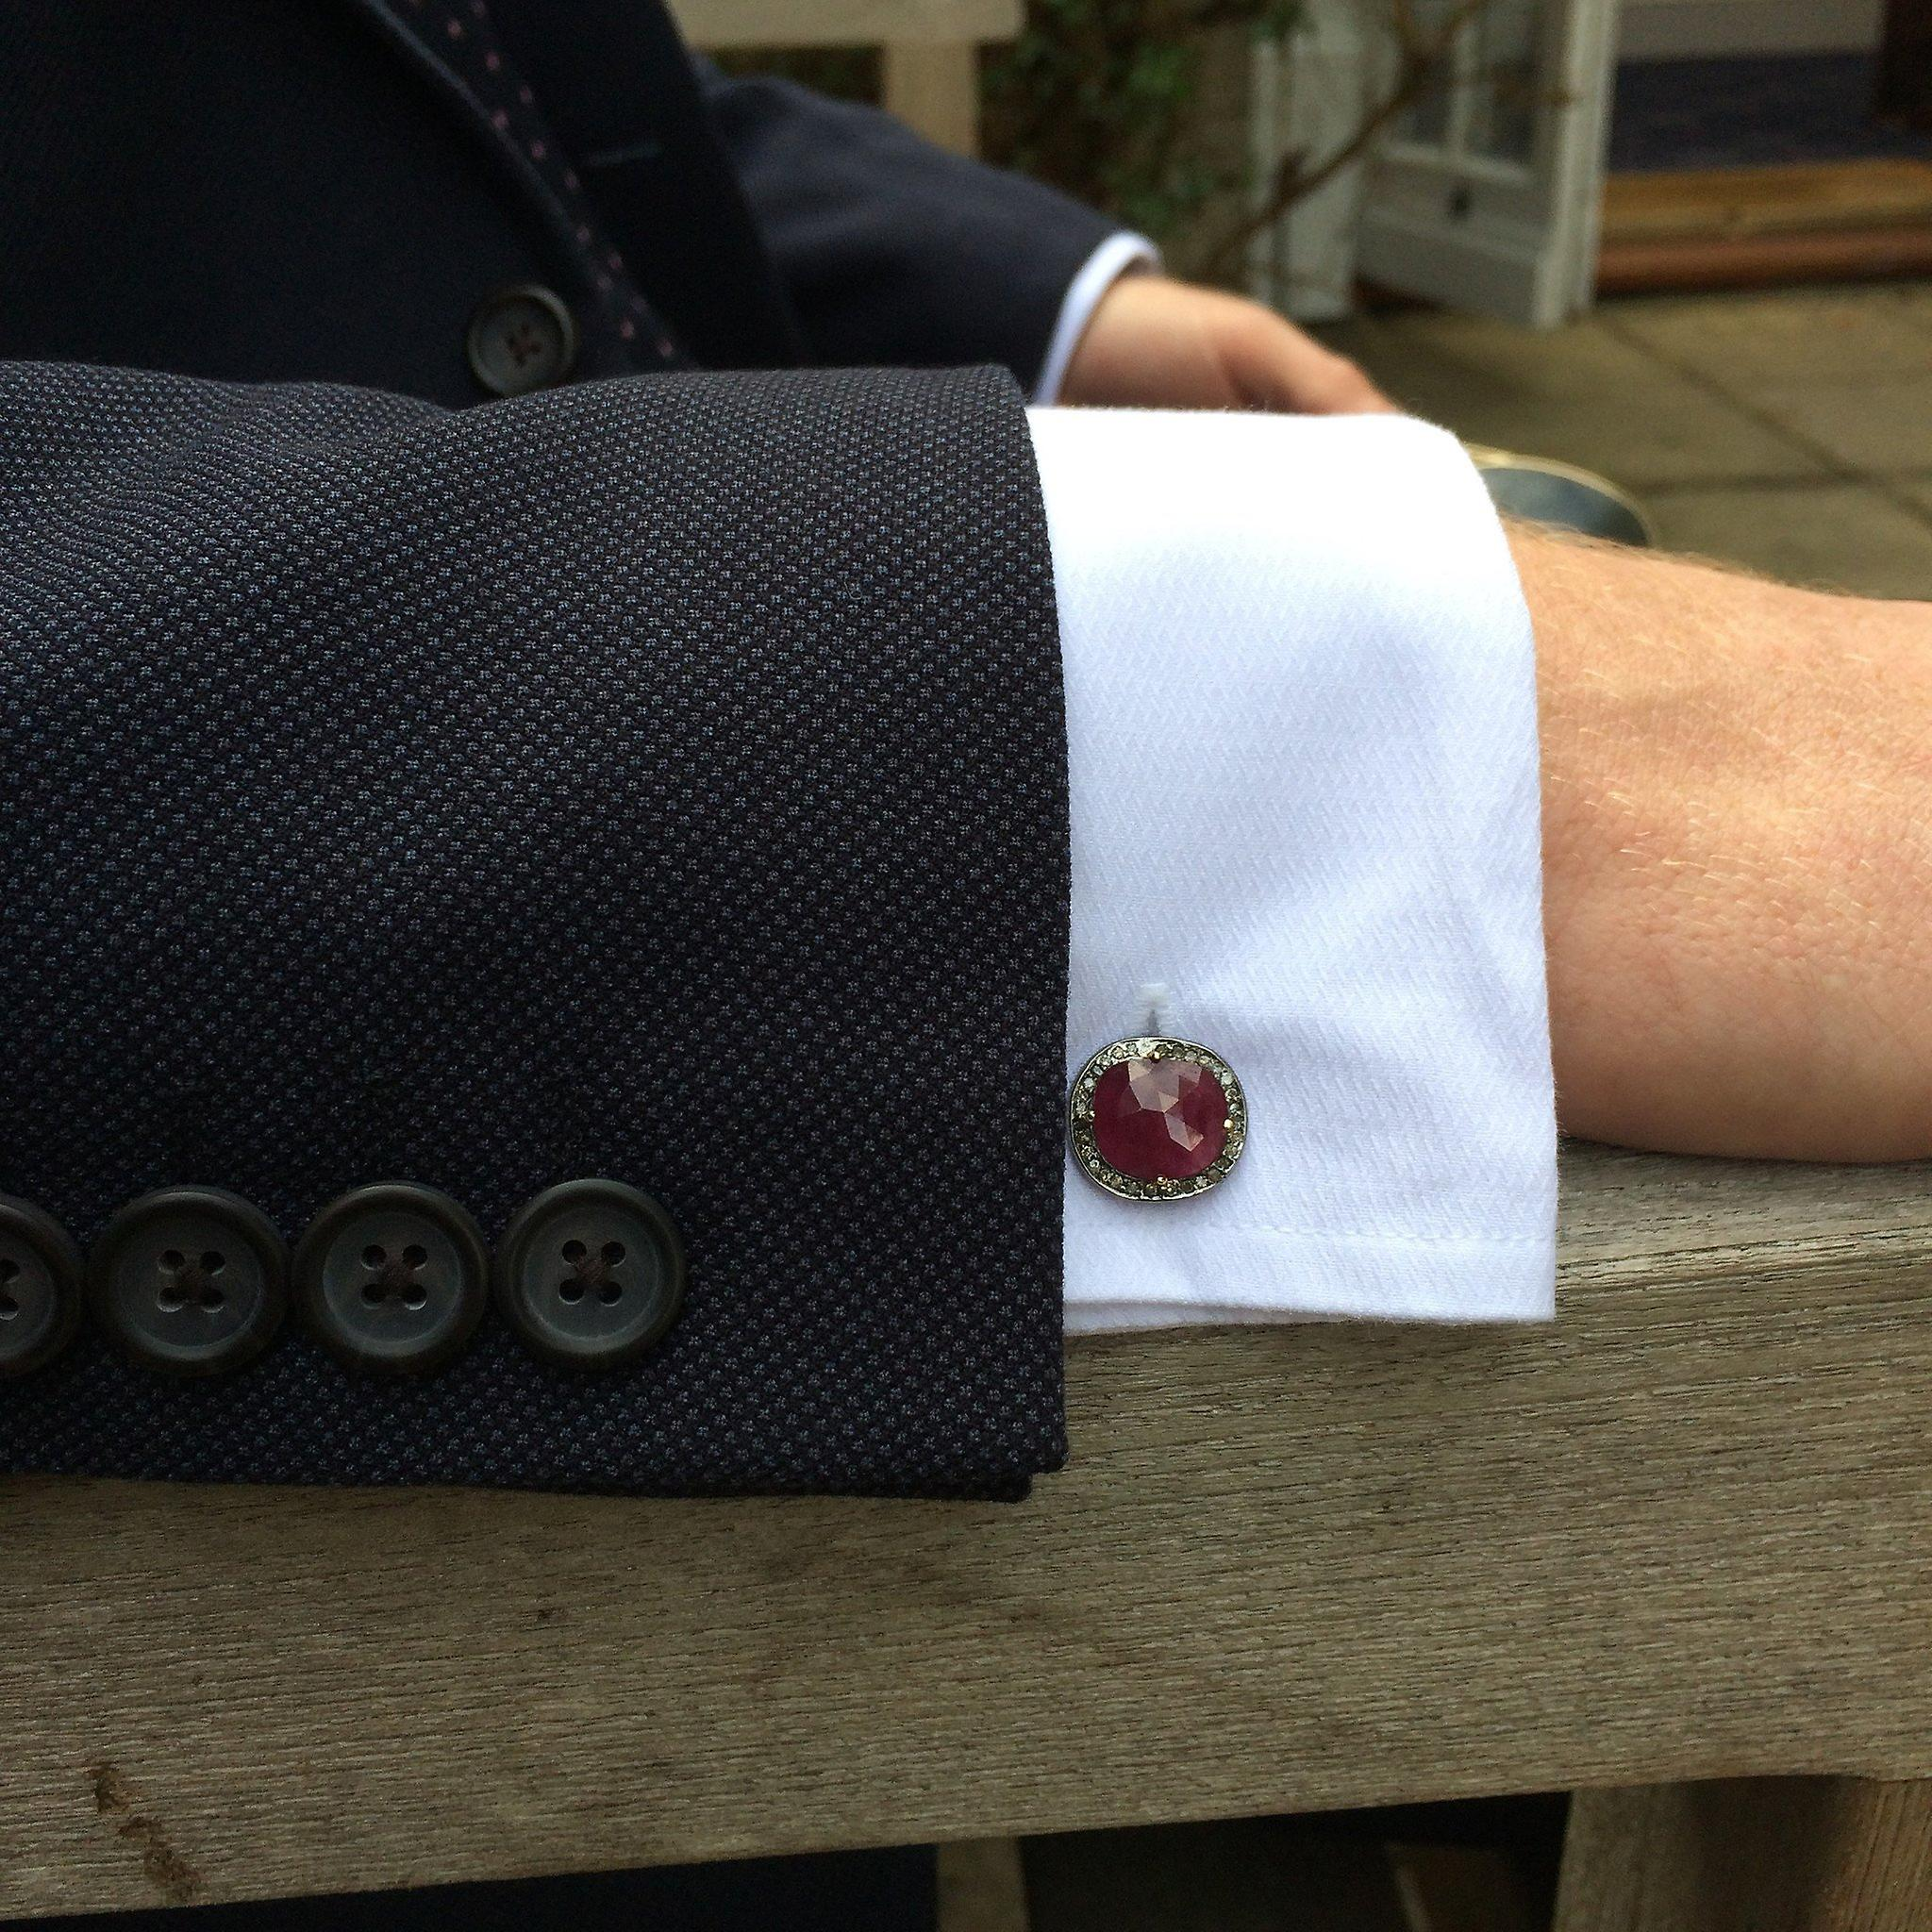 Latelita 925 Sterling Silver Oxidised Ruby Diamond Cufflinks Boxed Luxury Red